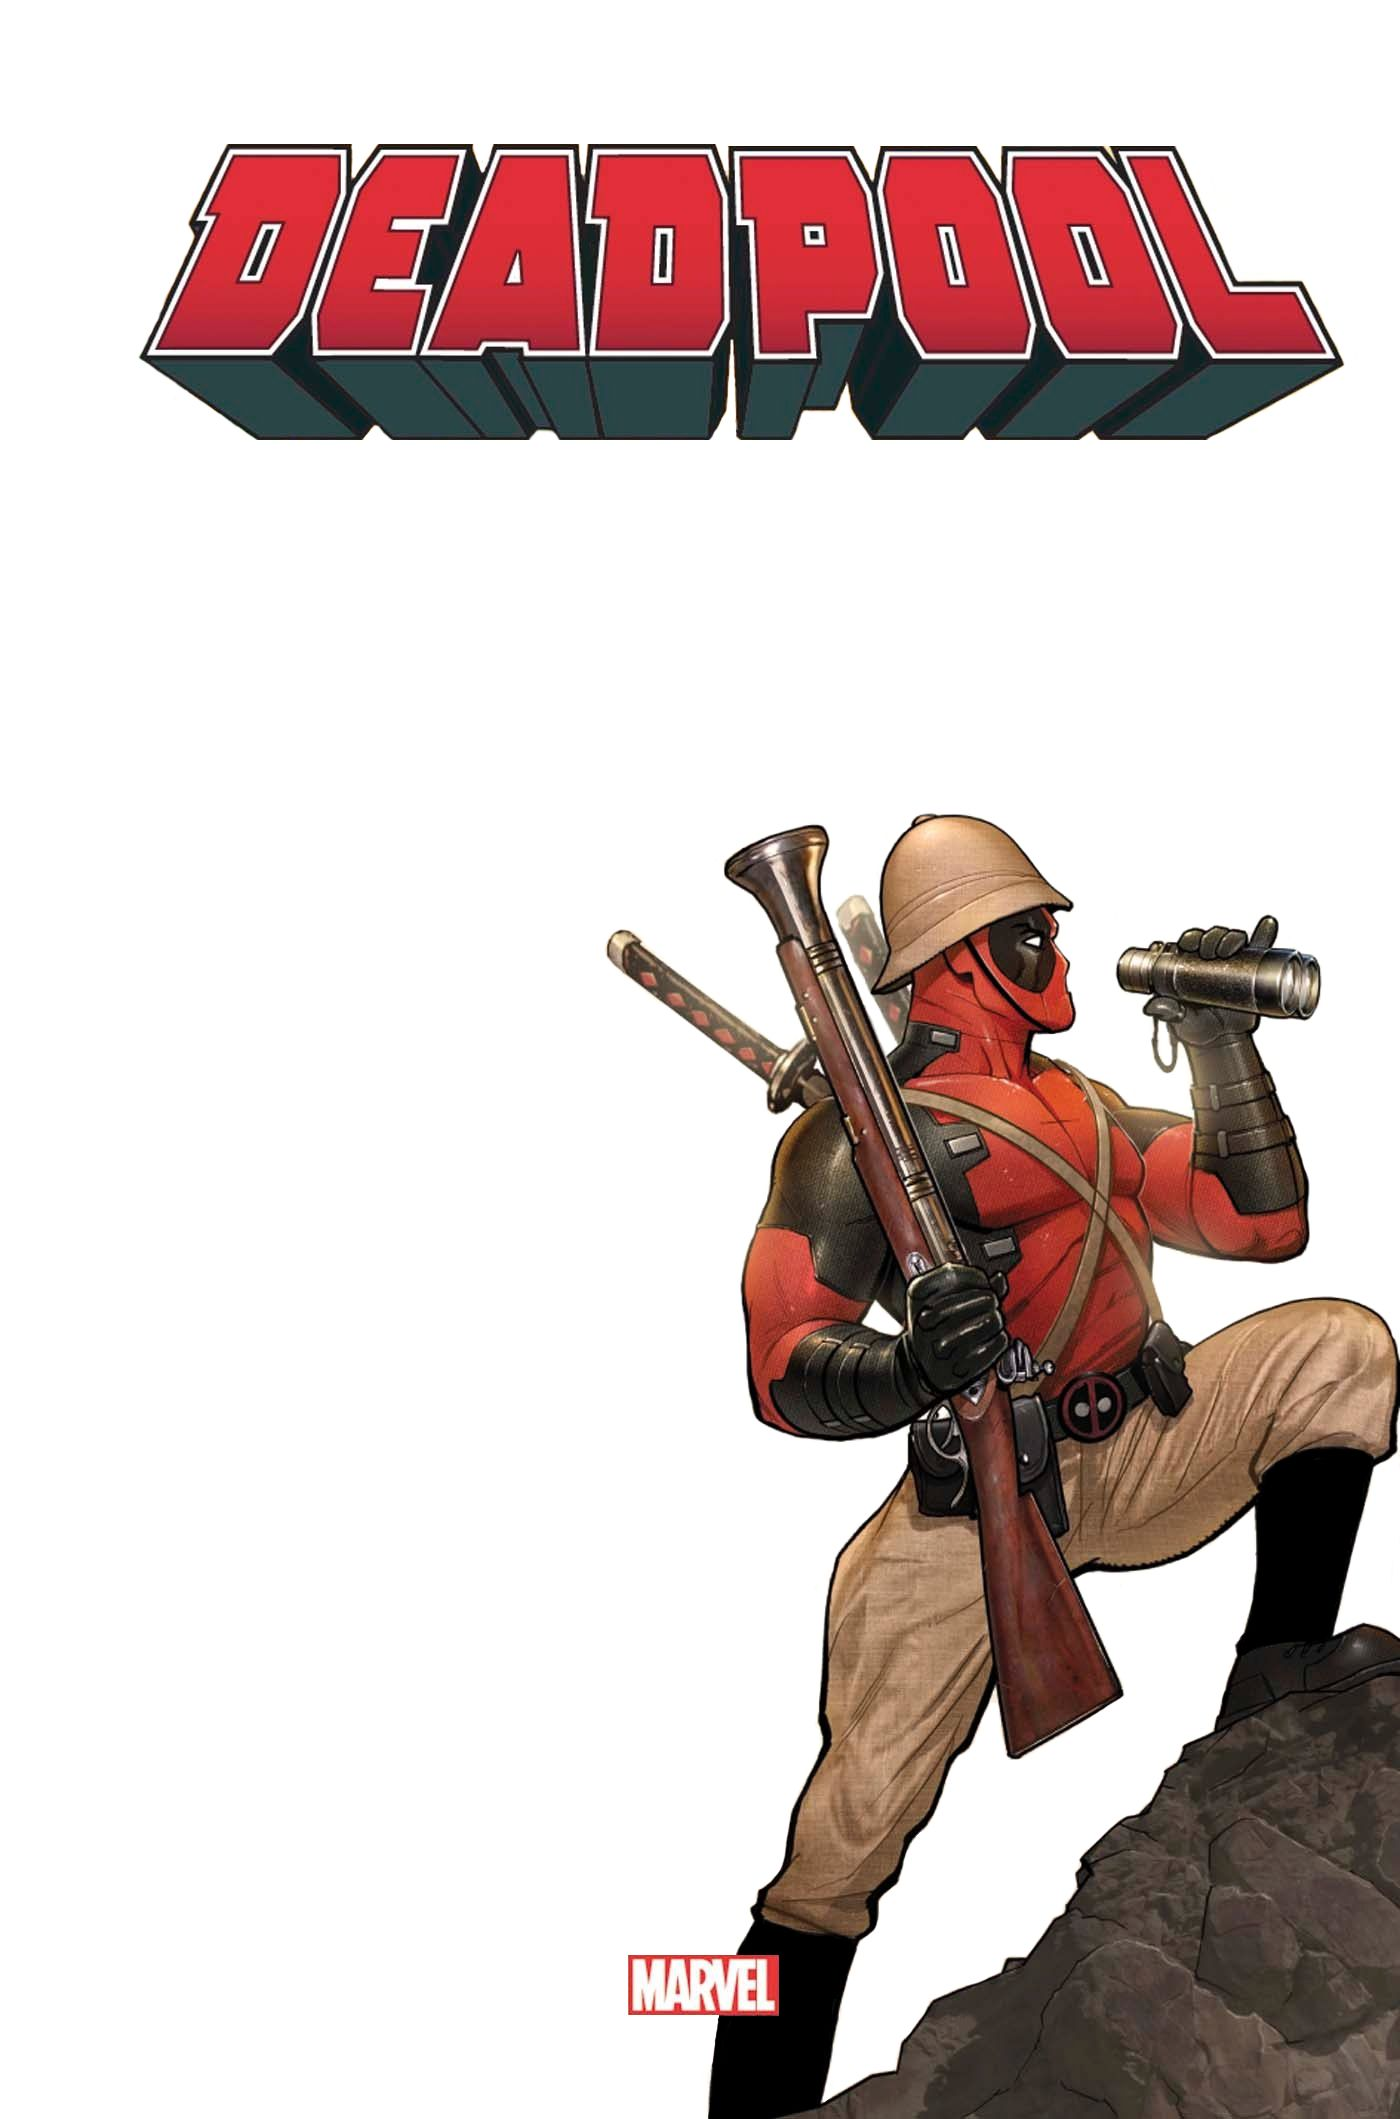 Deadpool Safari Deadpool, Cómics, Heroe